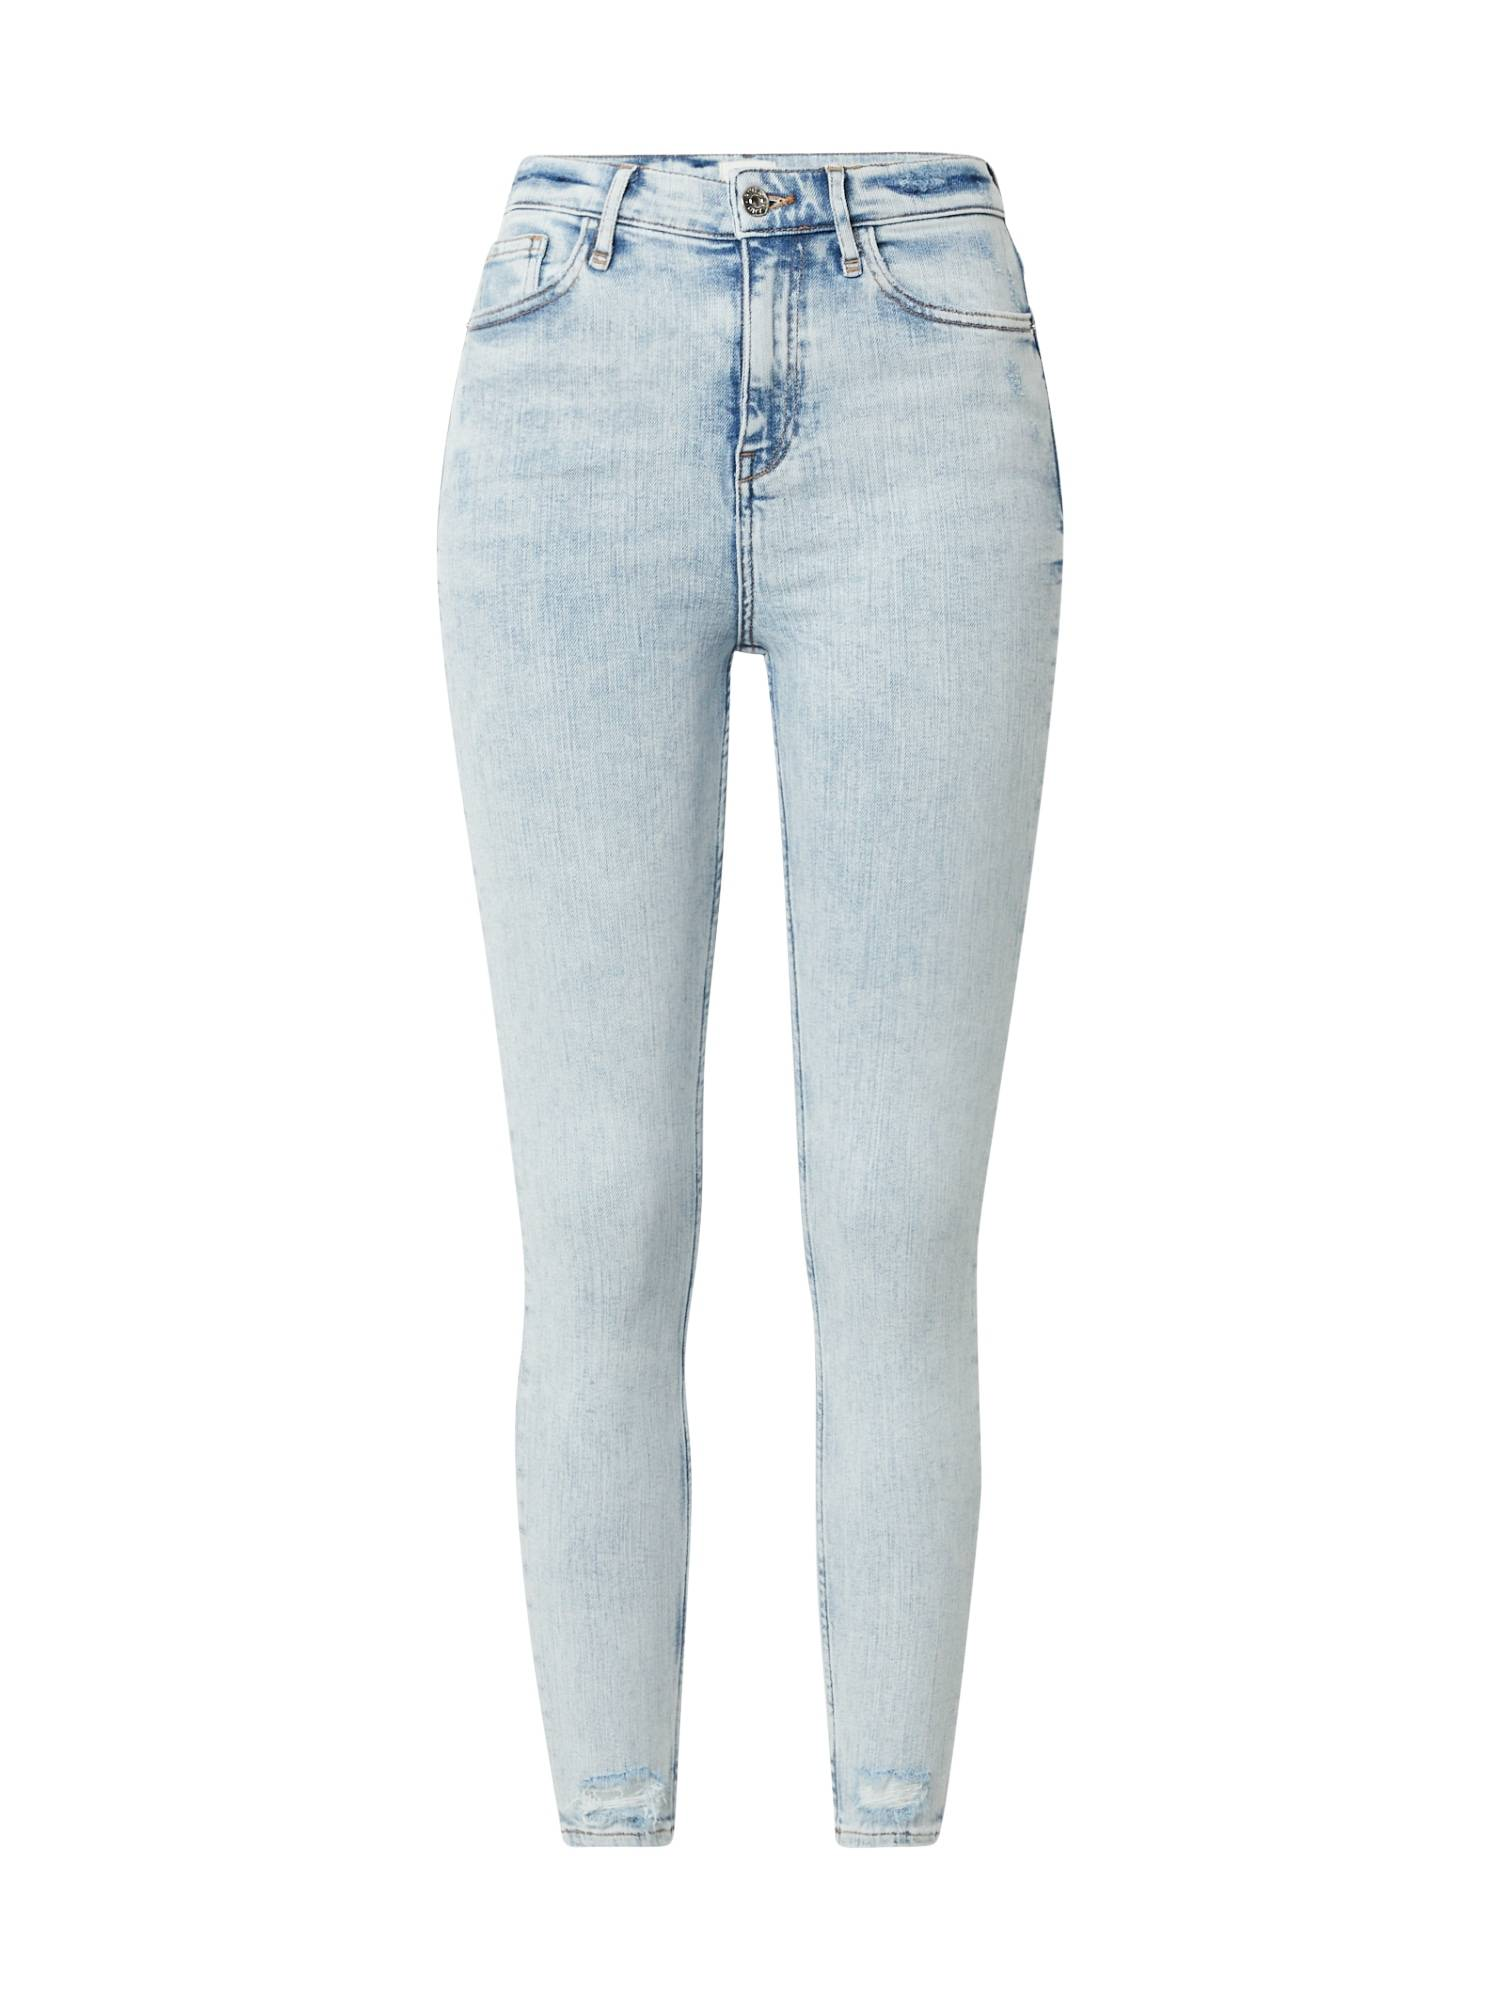 River Island Jean 'MOLLY JUICE'  - Bleu - Taille: 10 - female